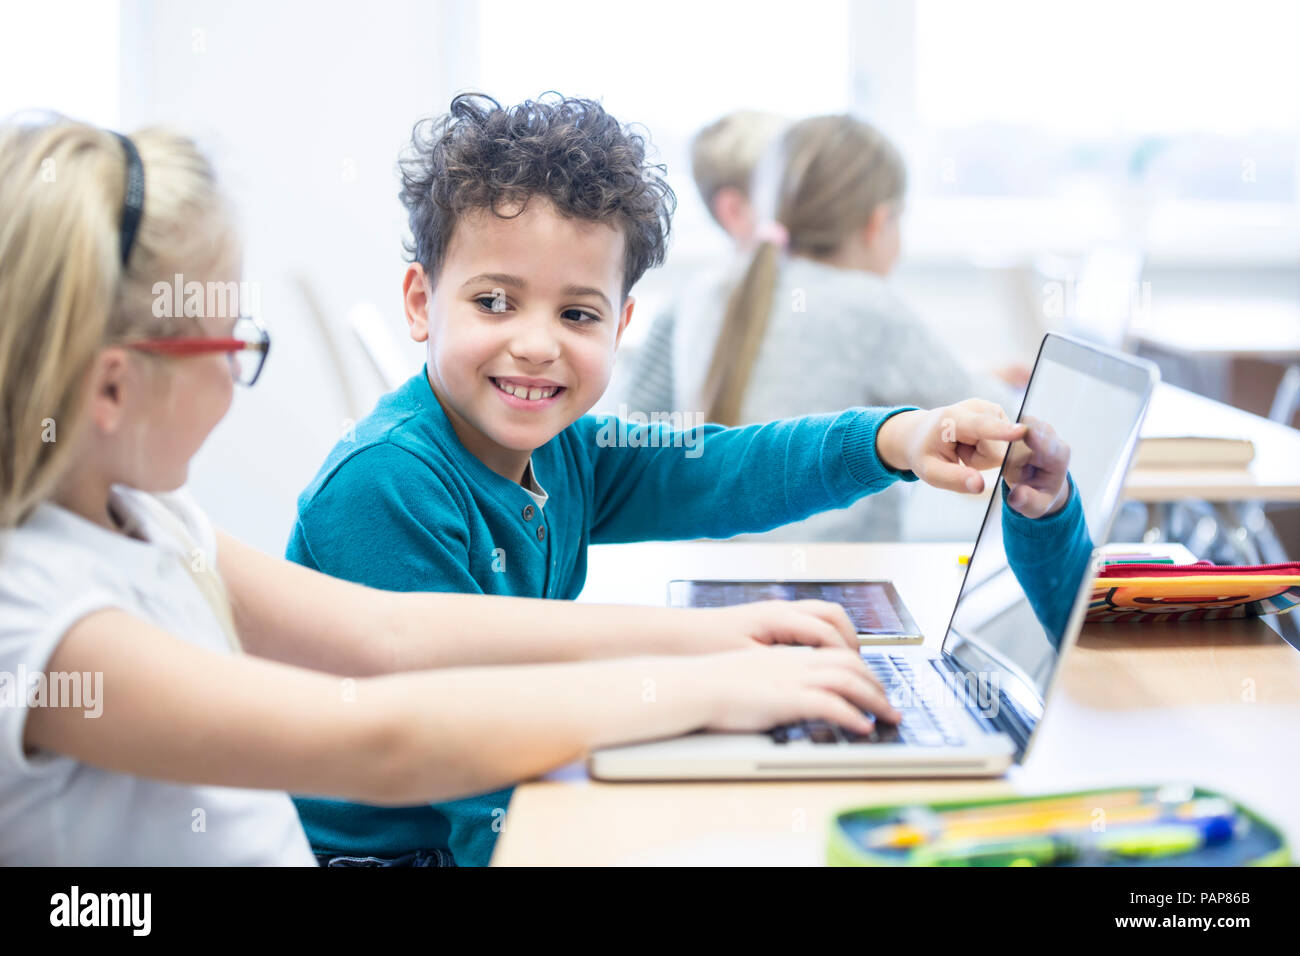 Schoolboy and schoolgirl using laptop together in class - Stock Image